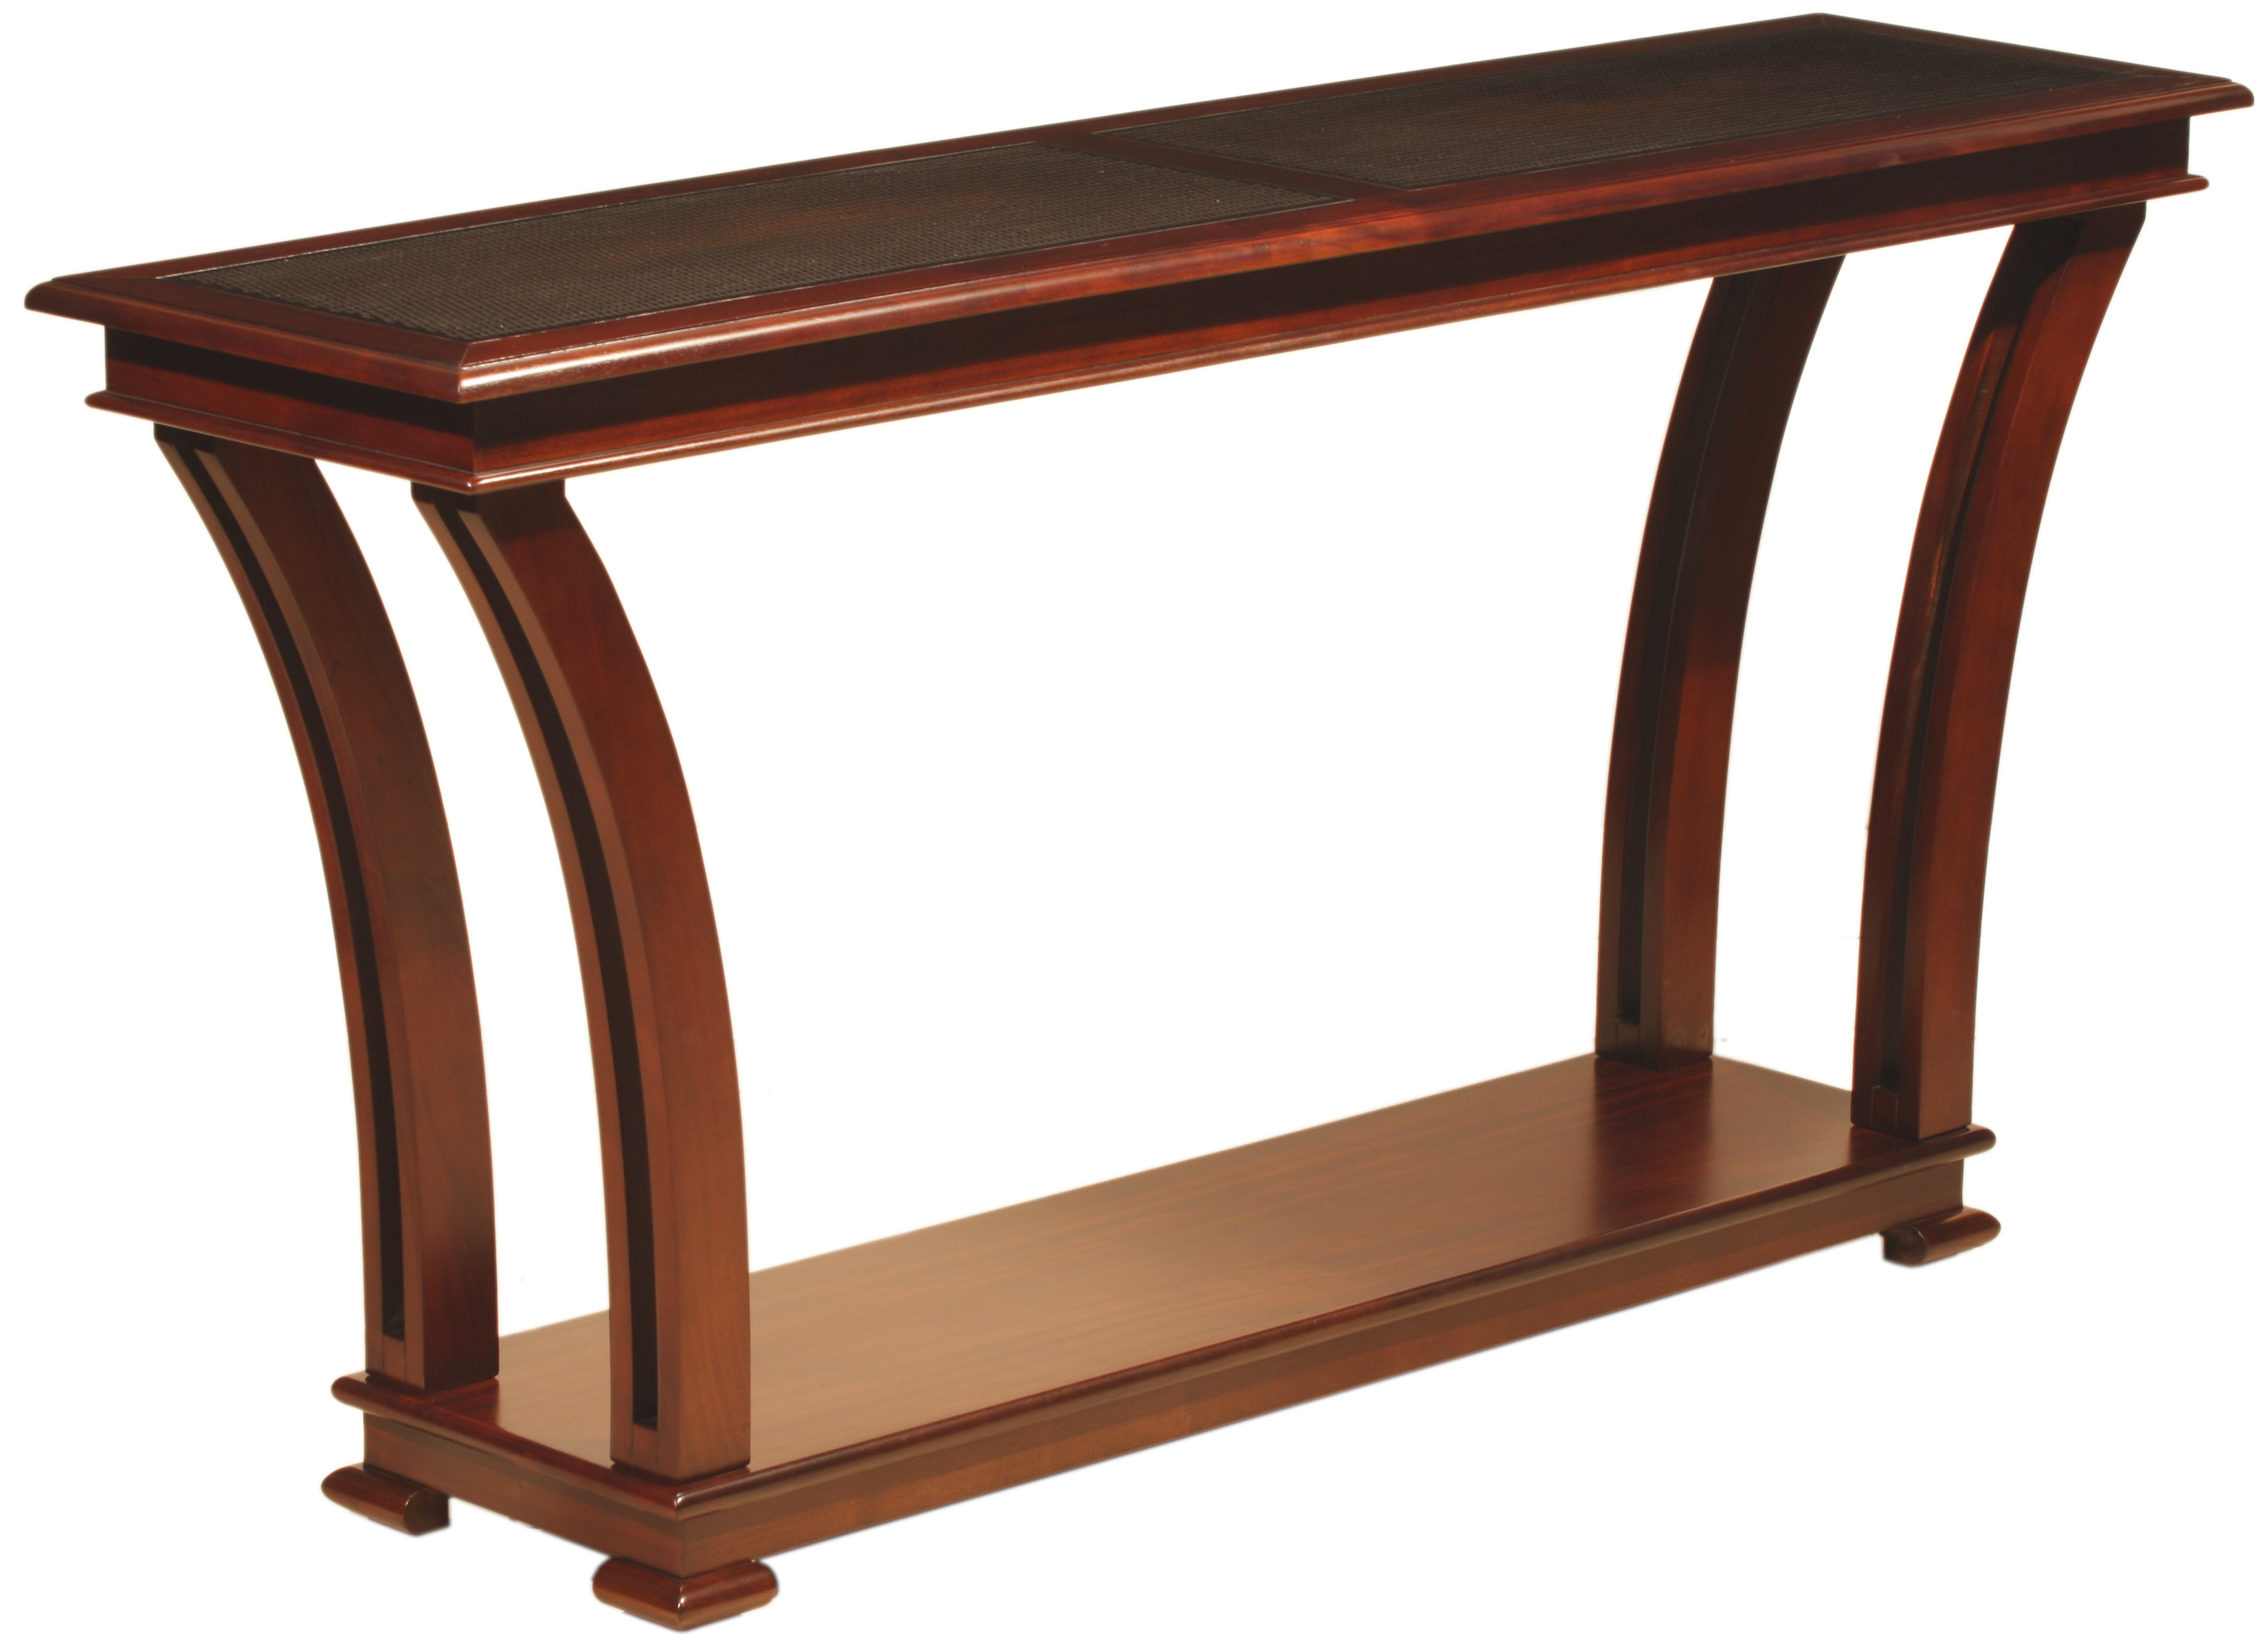 Topolansky product categories wall tables for Sofa table under 200